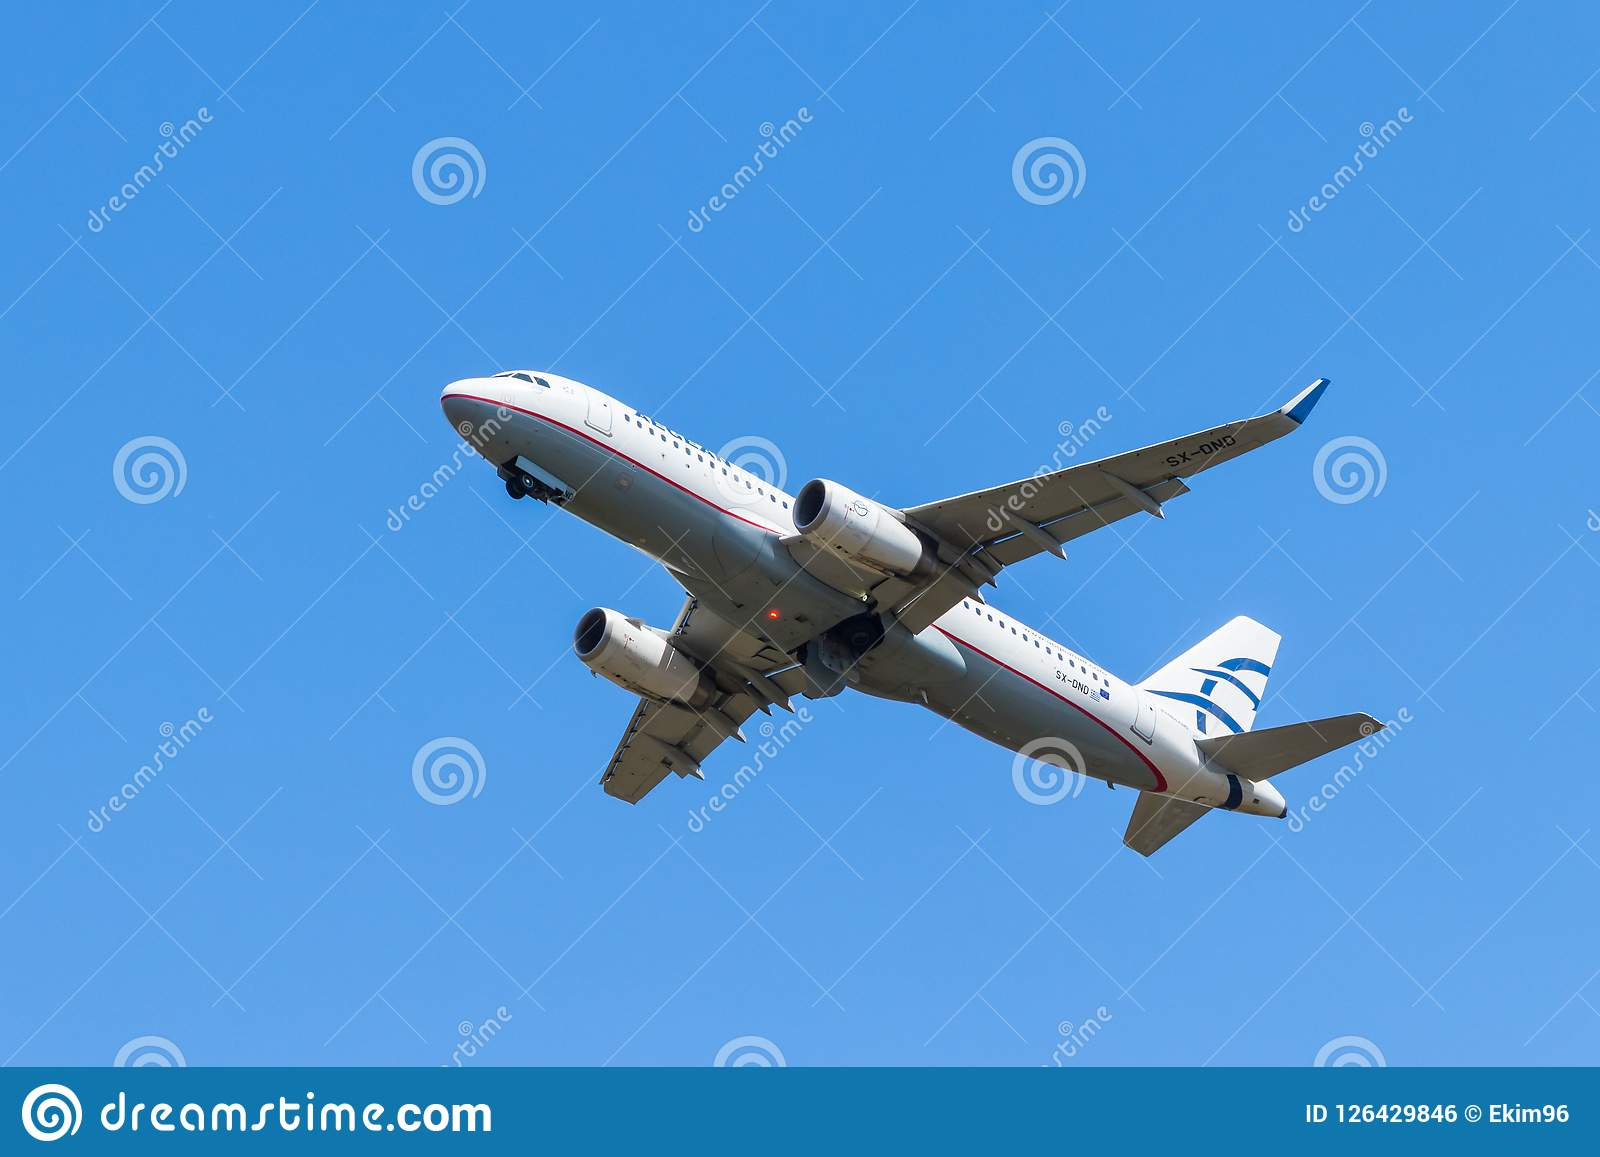 BERLIN, GERMANY - JULY 7, 2018: Aegean Airlines, Airbus A320-232 takes off from Tegel airport in Berlin.